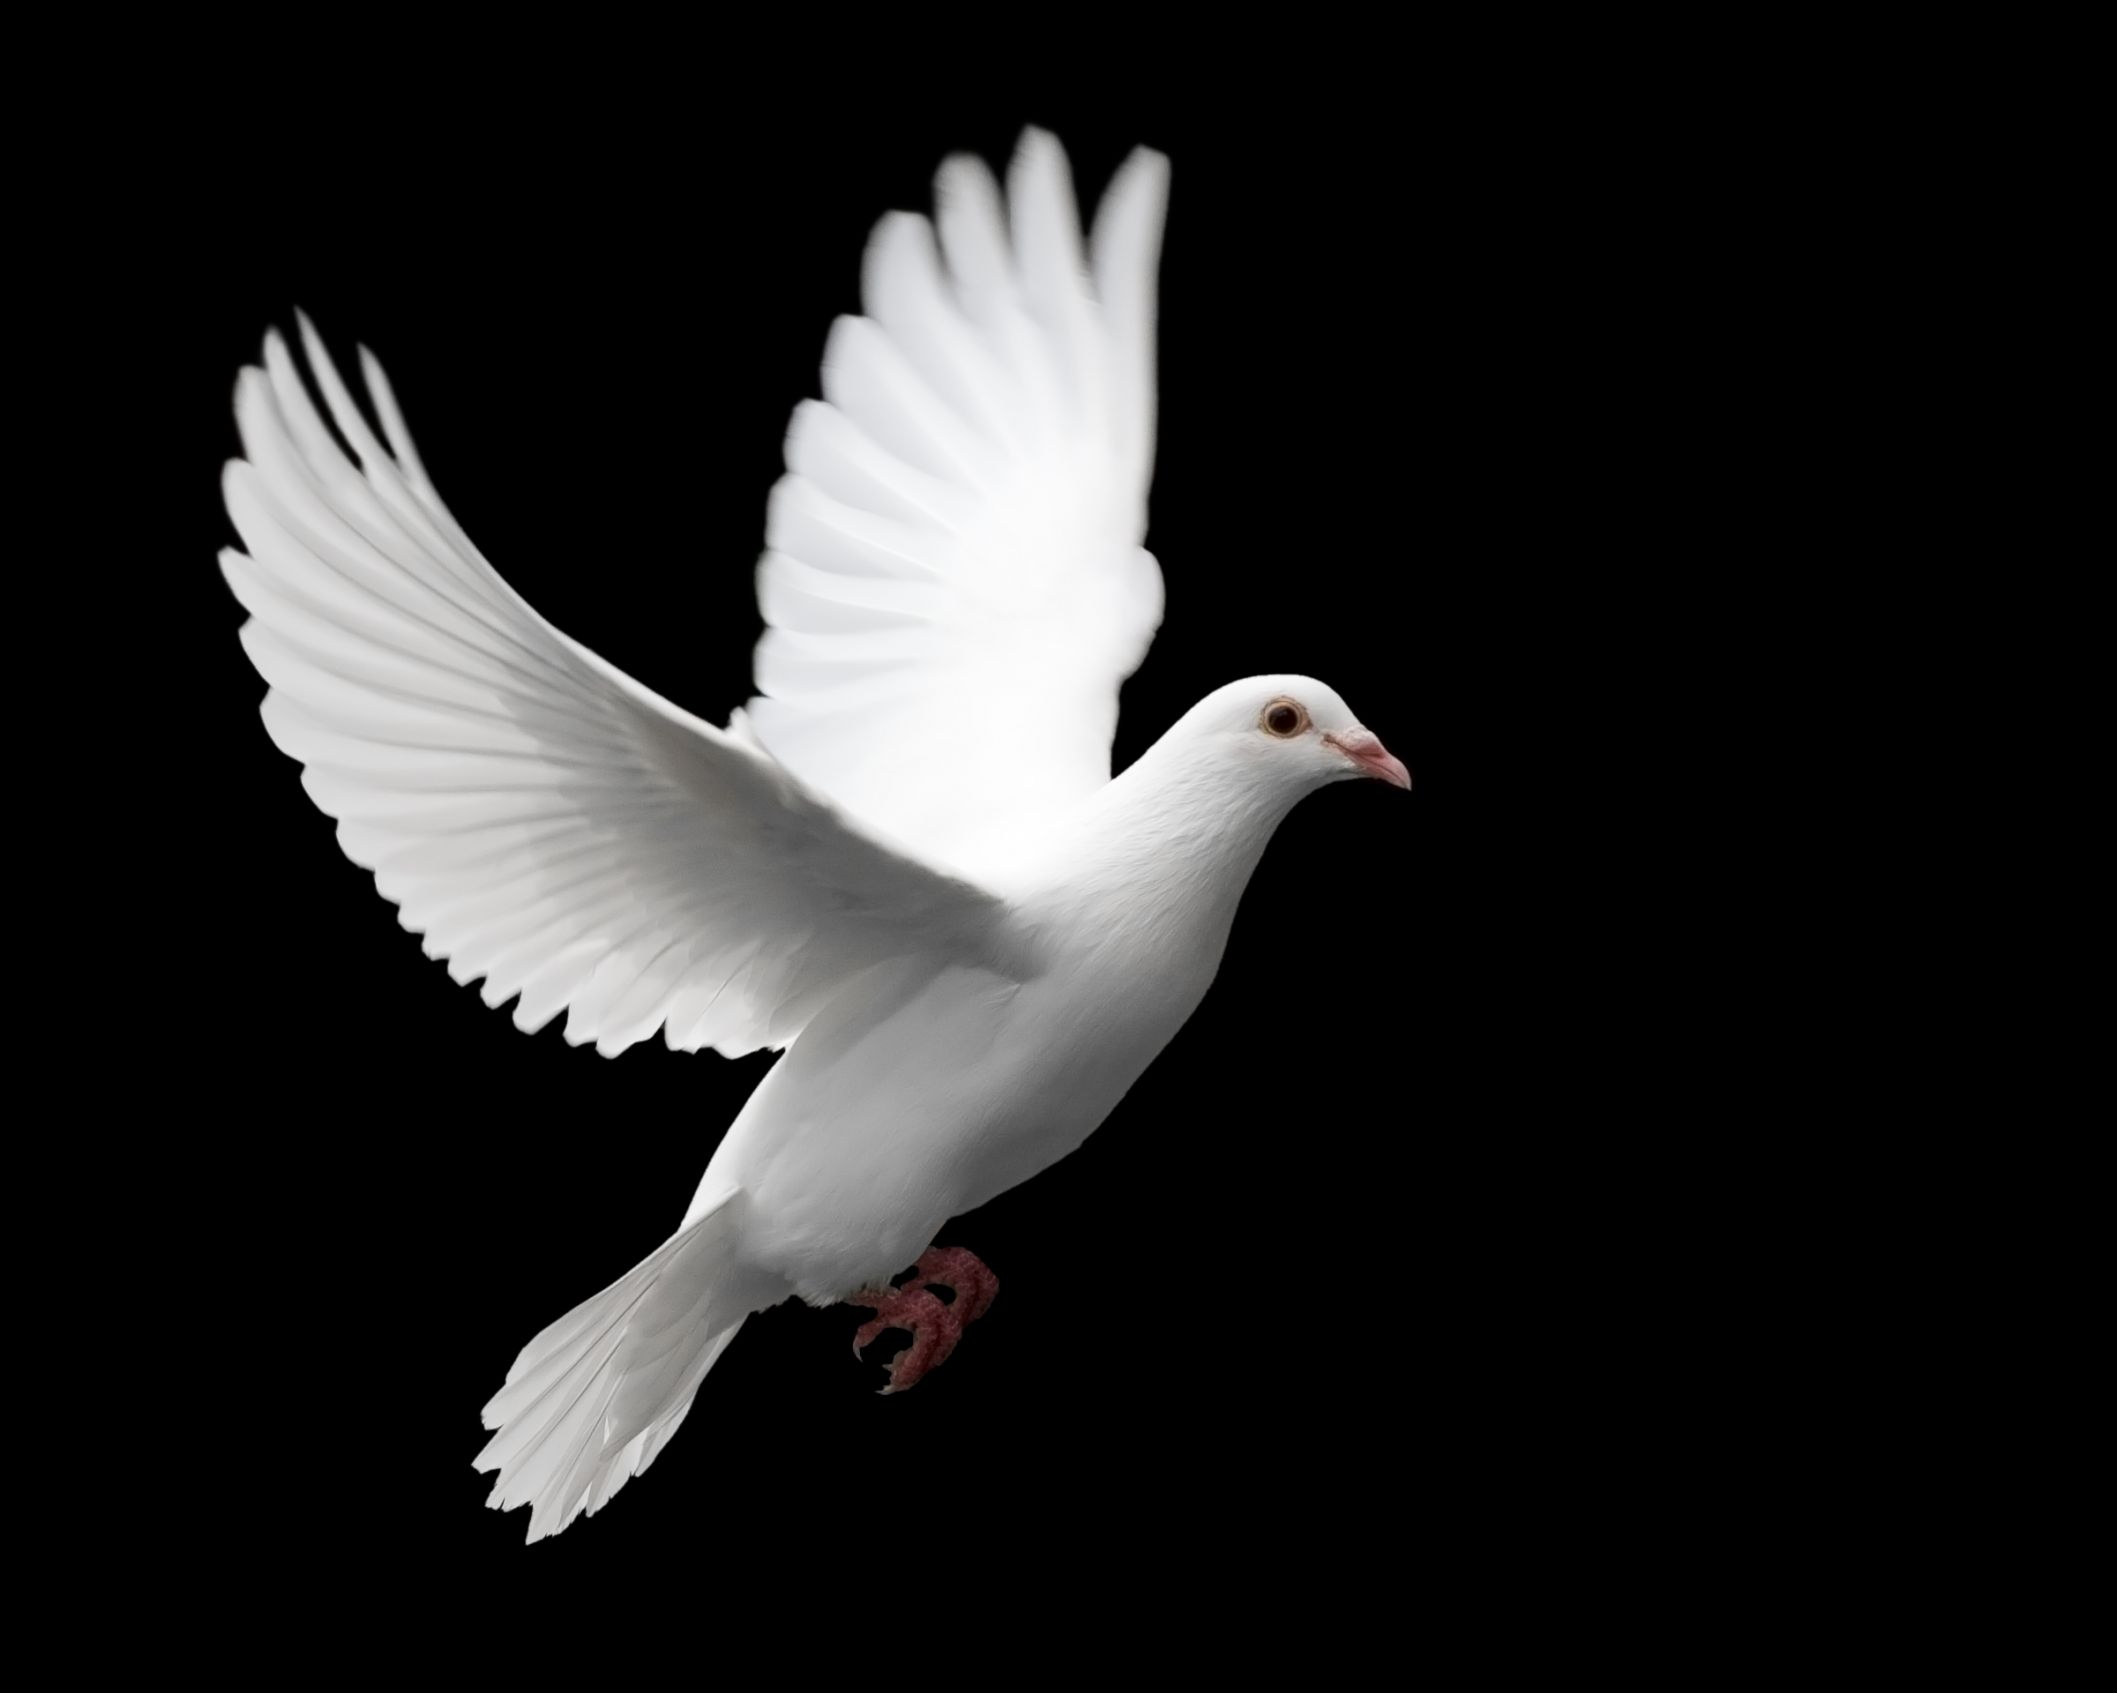 DOVE PIGEON LOVE PEACE HAPPINESS Meme Template